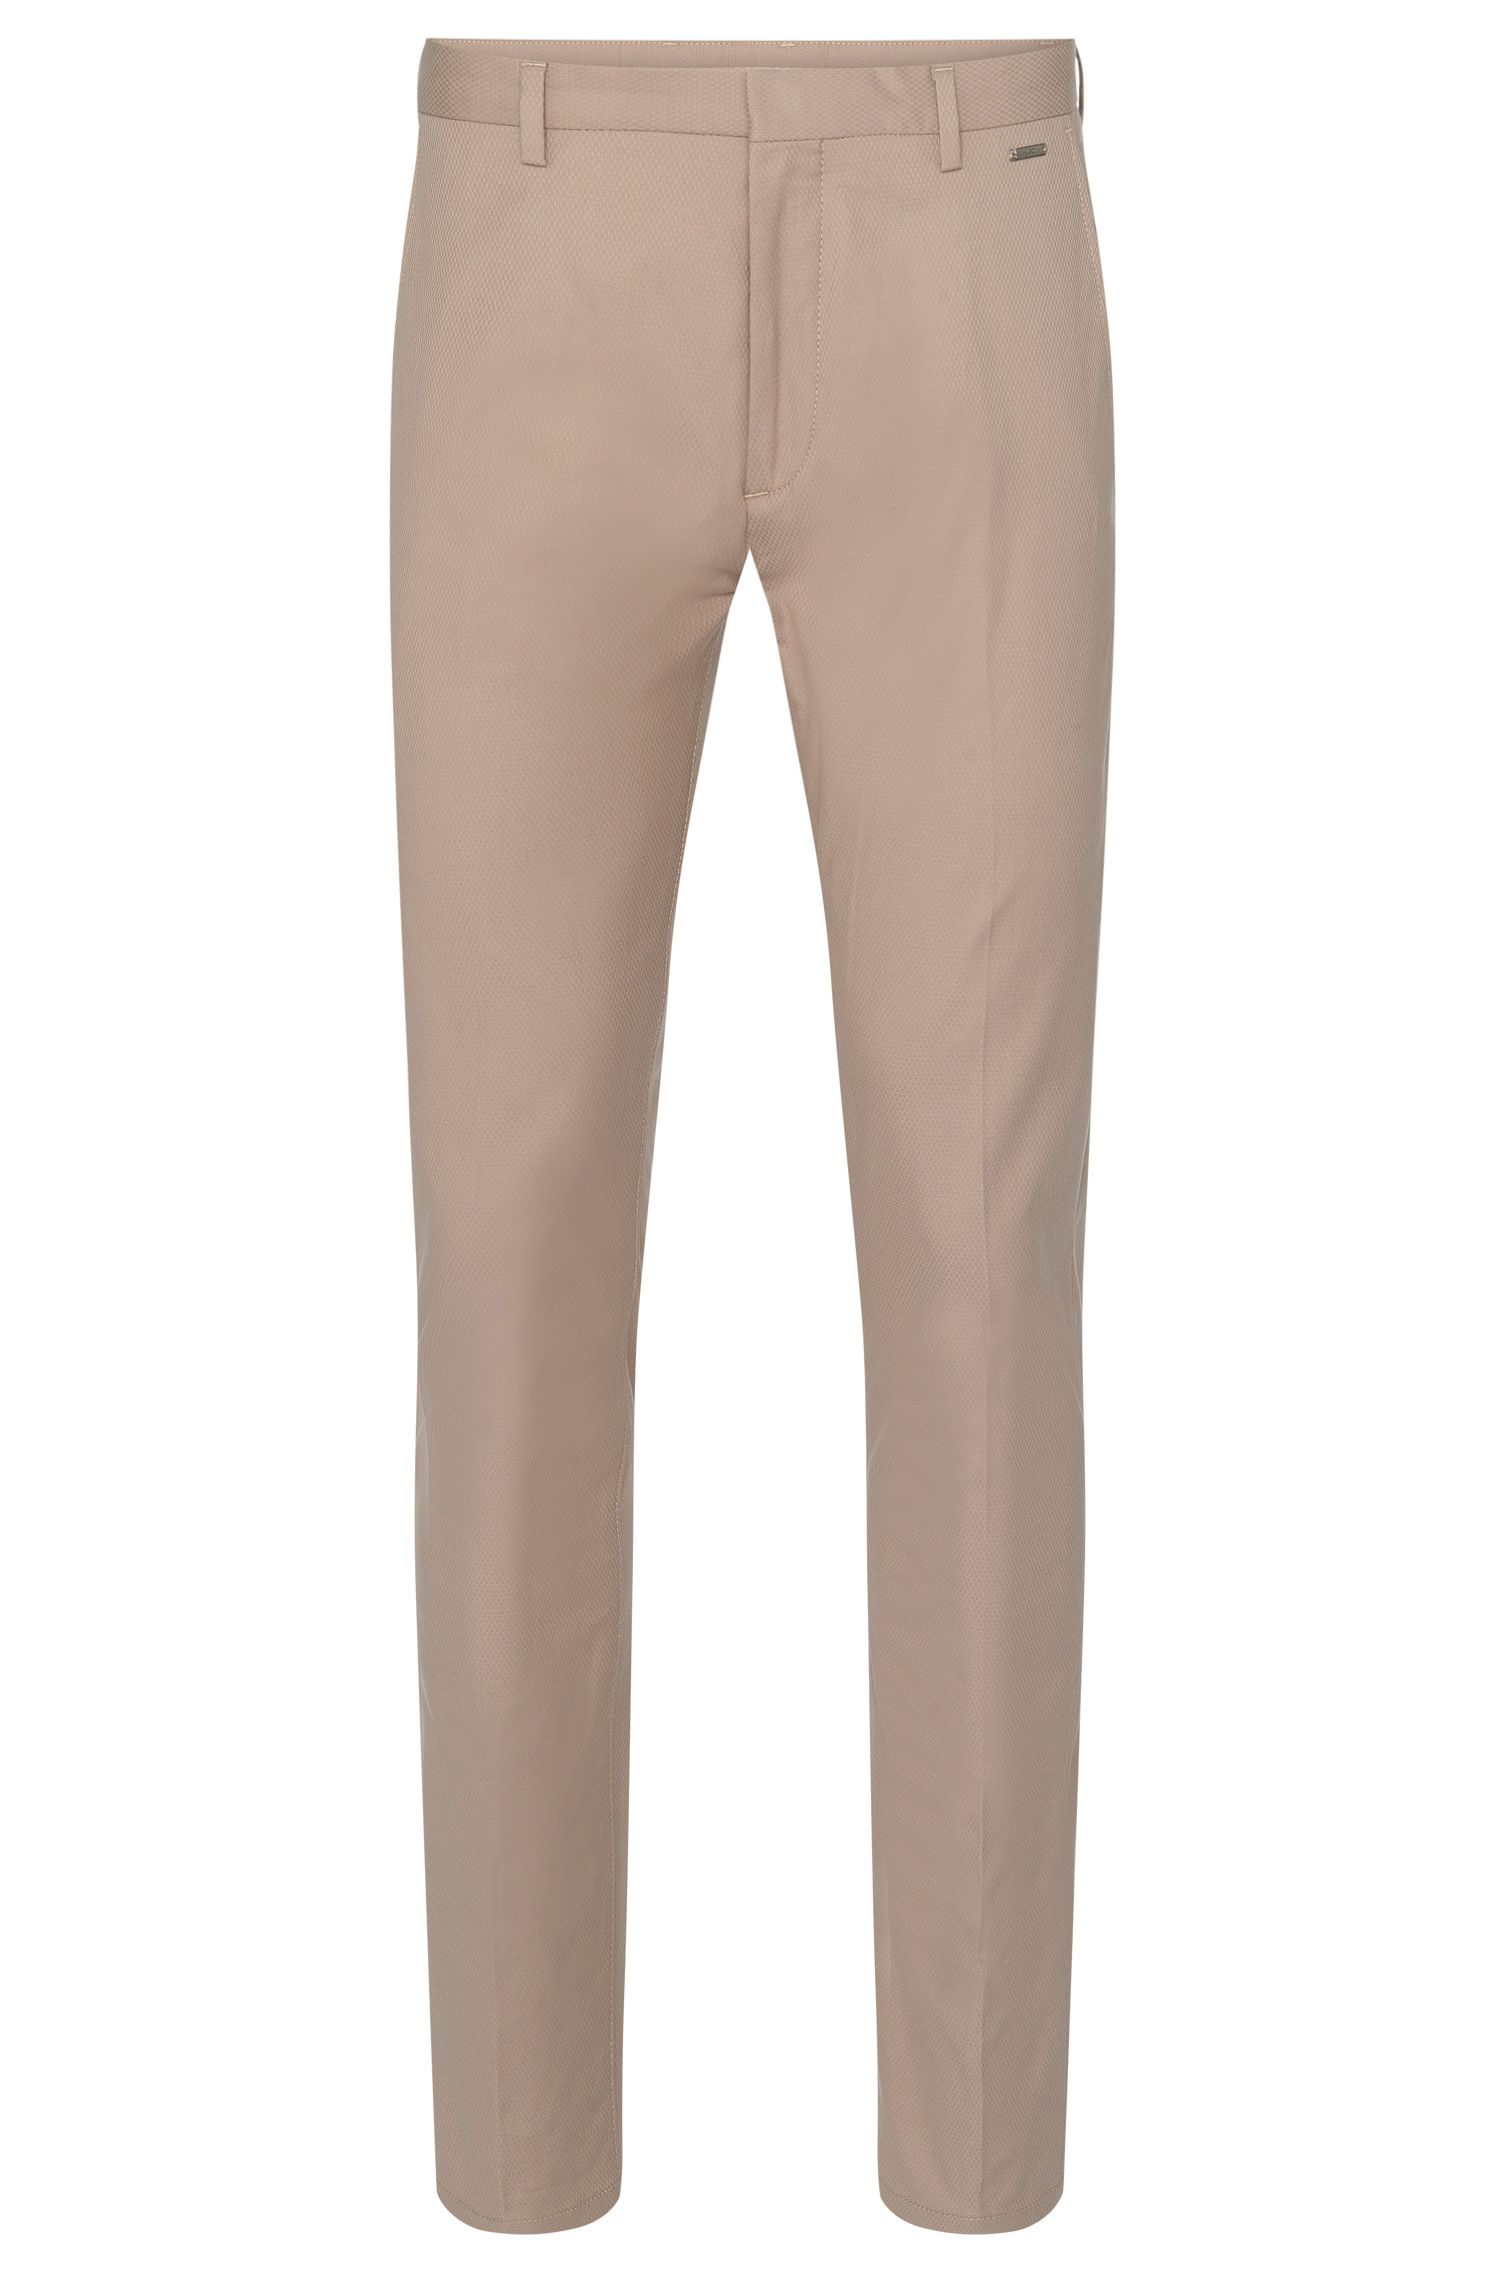 Textured regular-fit trousers in stretchy cotton blend: 'Helgo1'